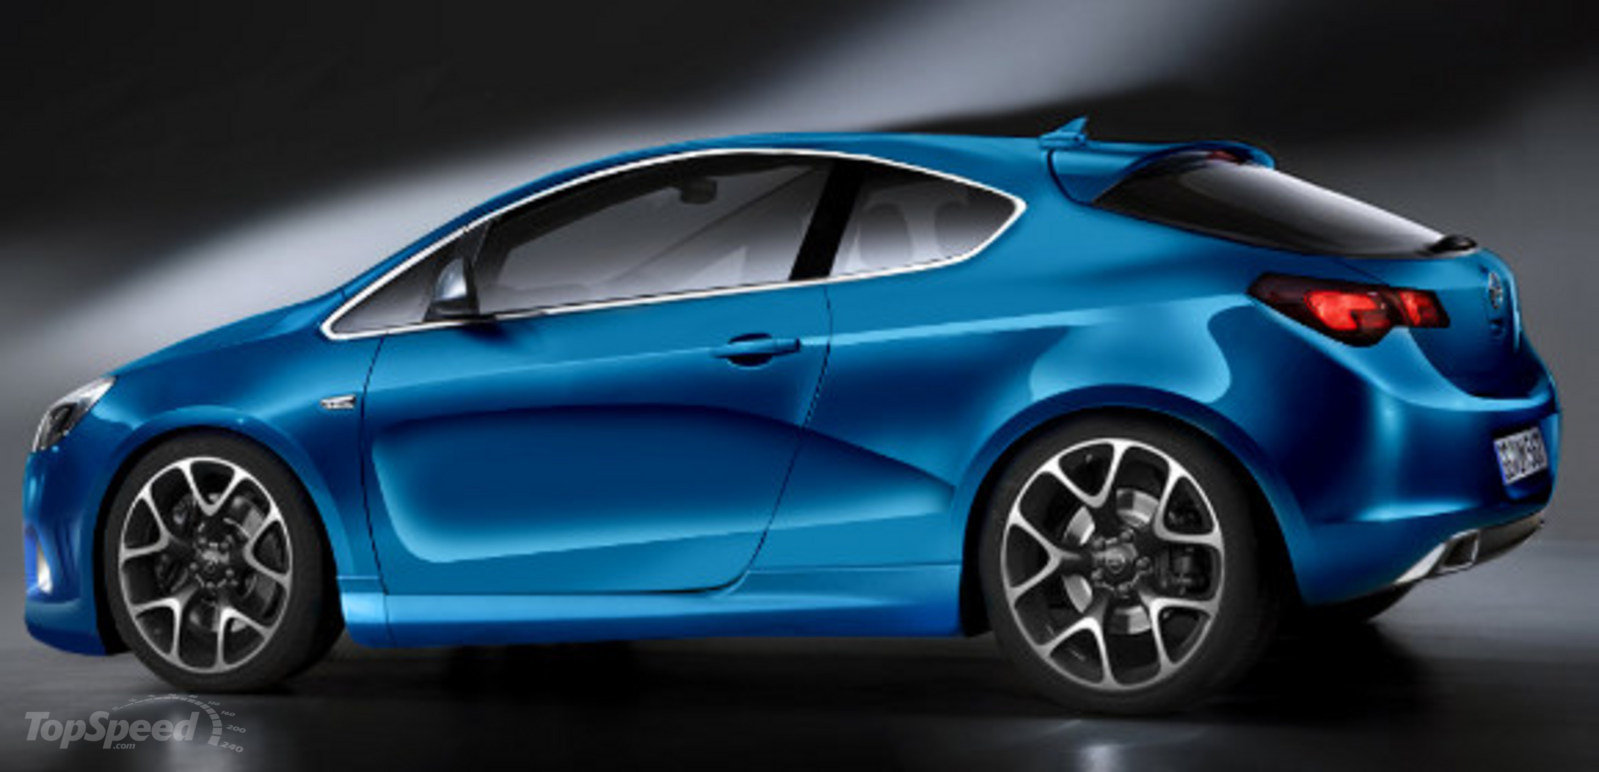 opel astra coupe sport rendered news top speed. Black Bedroom Furniture Sets. Home Design Ideas